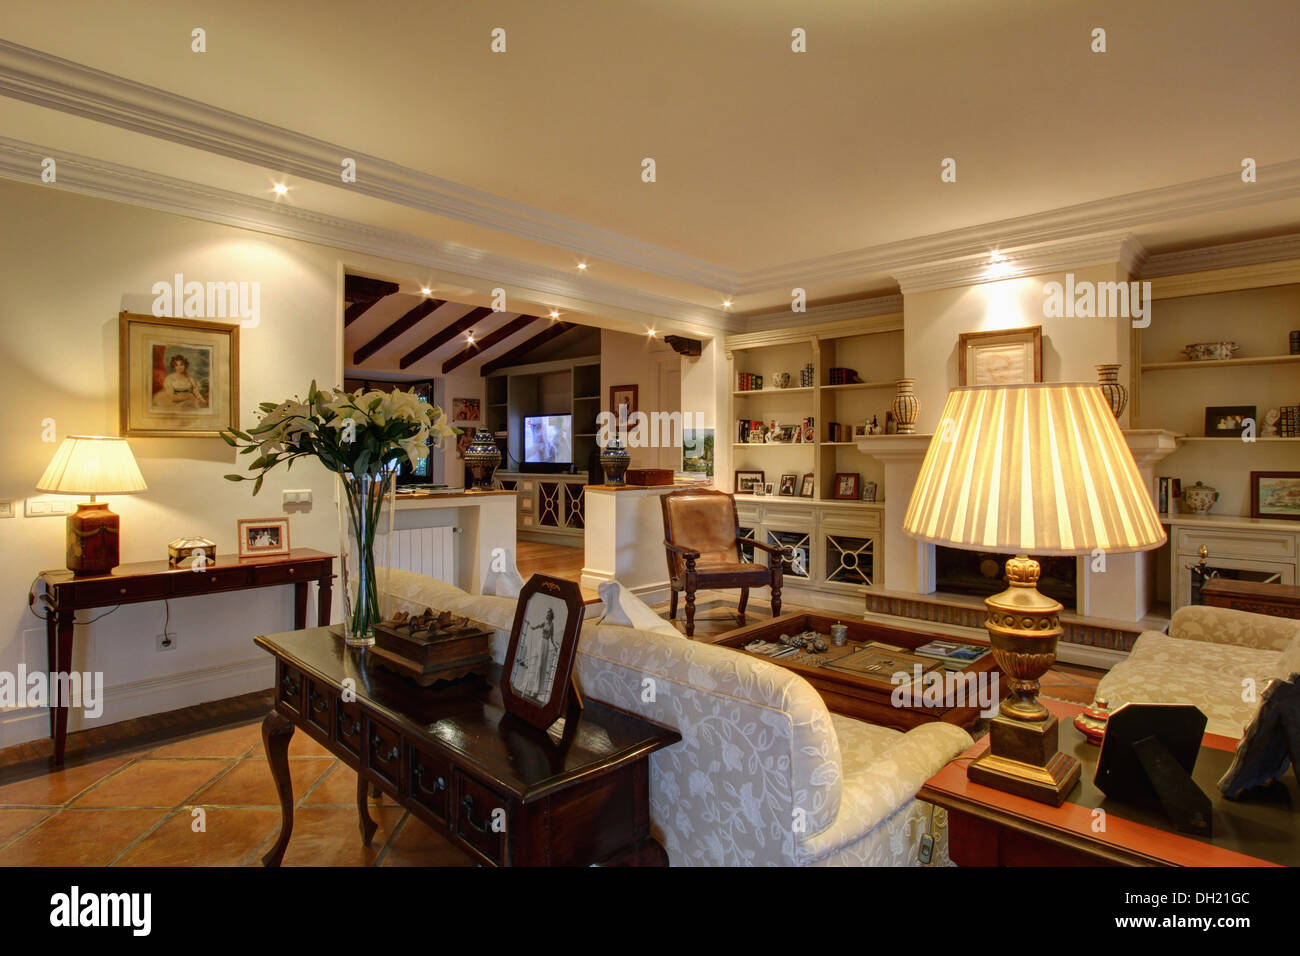 Lighted Lamps And Down Lighting In Comfortable Spanish Living Room With Console Table Behind Sofa